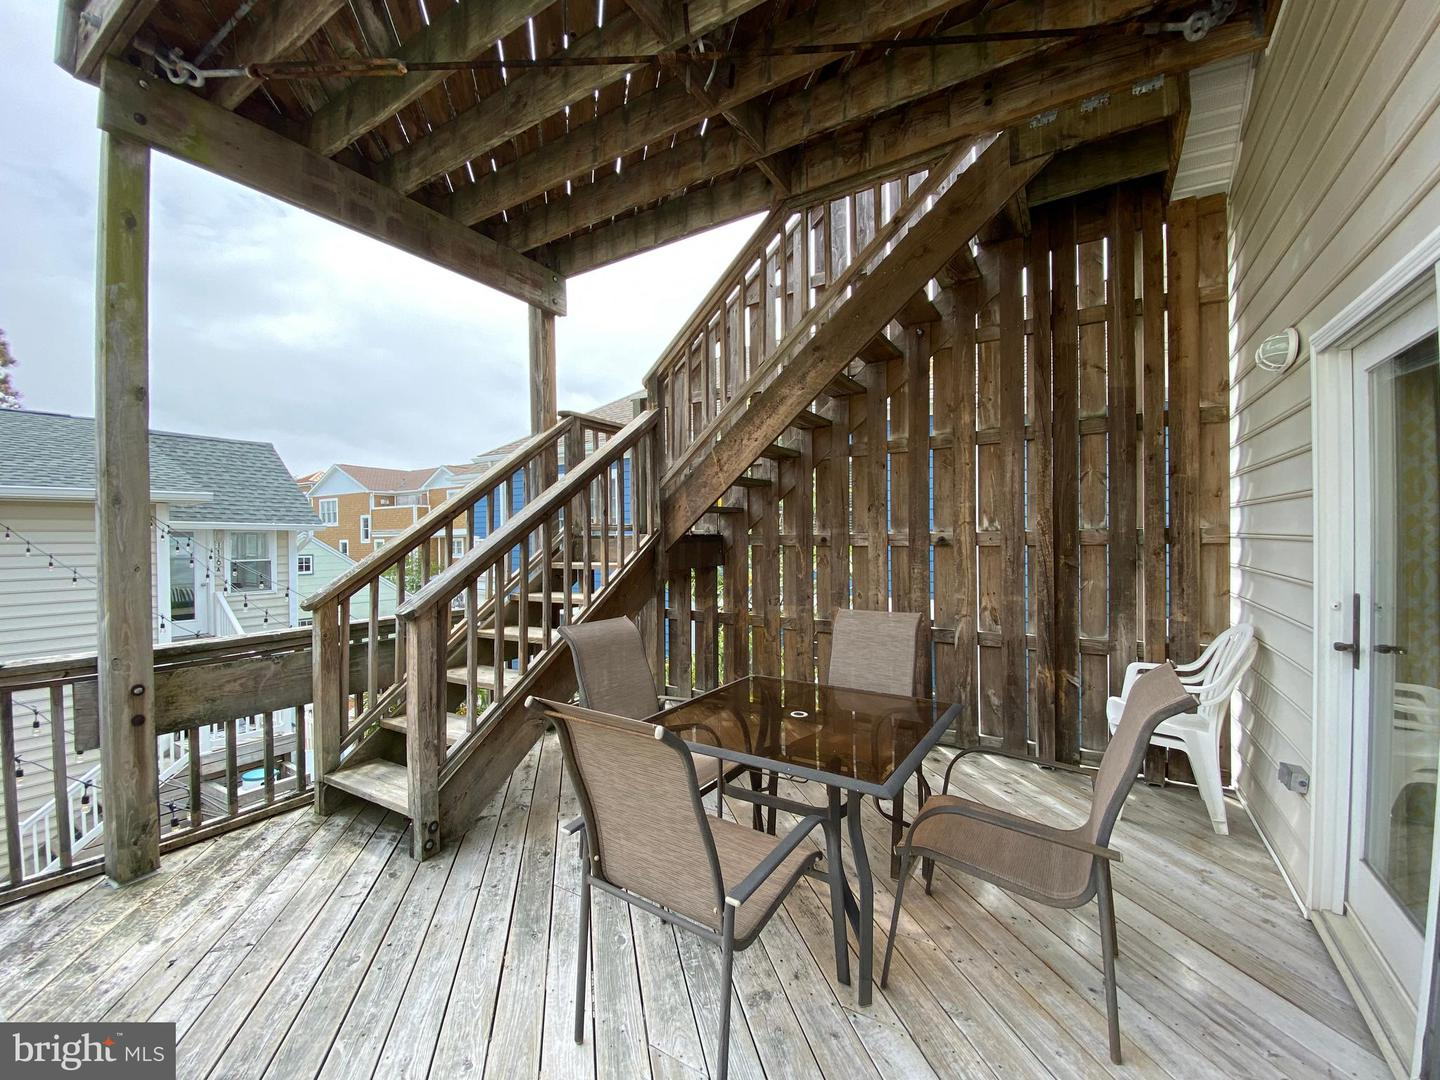 DESU161746-304145716467-2020-05-30-11-15-25 116 Hollywood St | Bethany Beach, DE Real Estate For Sale | MLS# Desu161746  - Ocean Atlantic